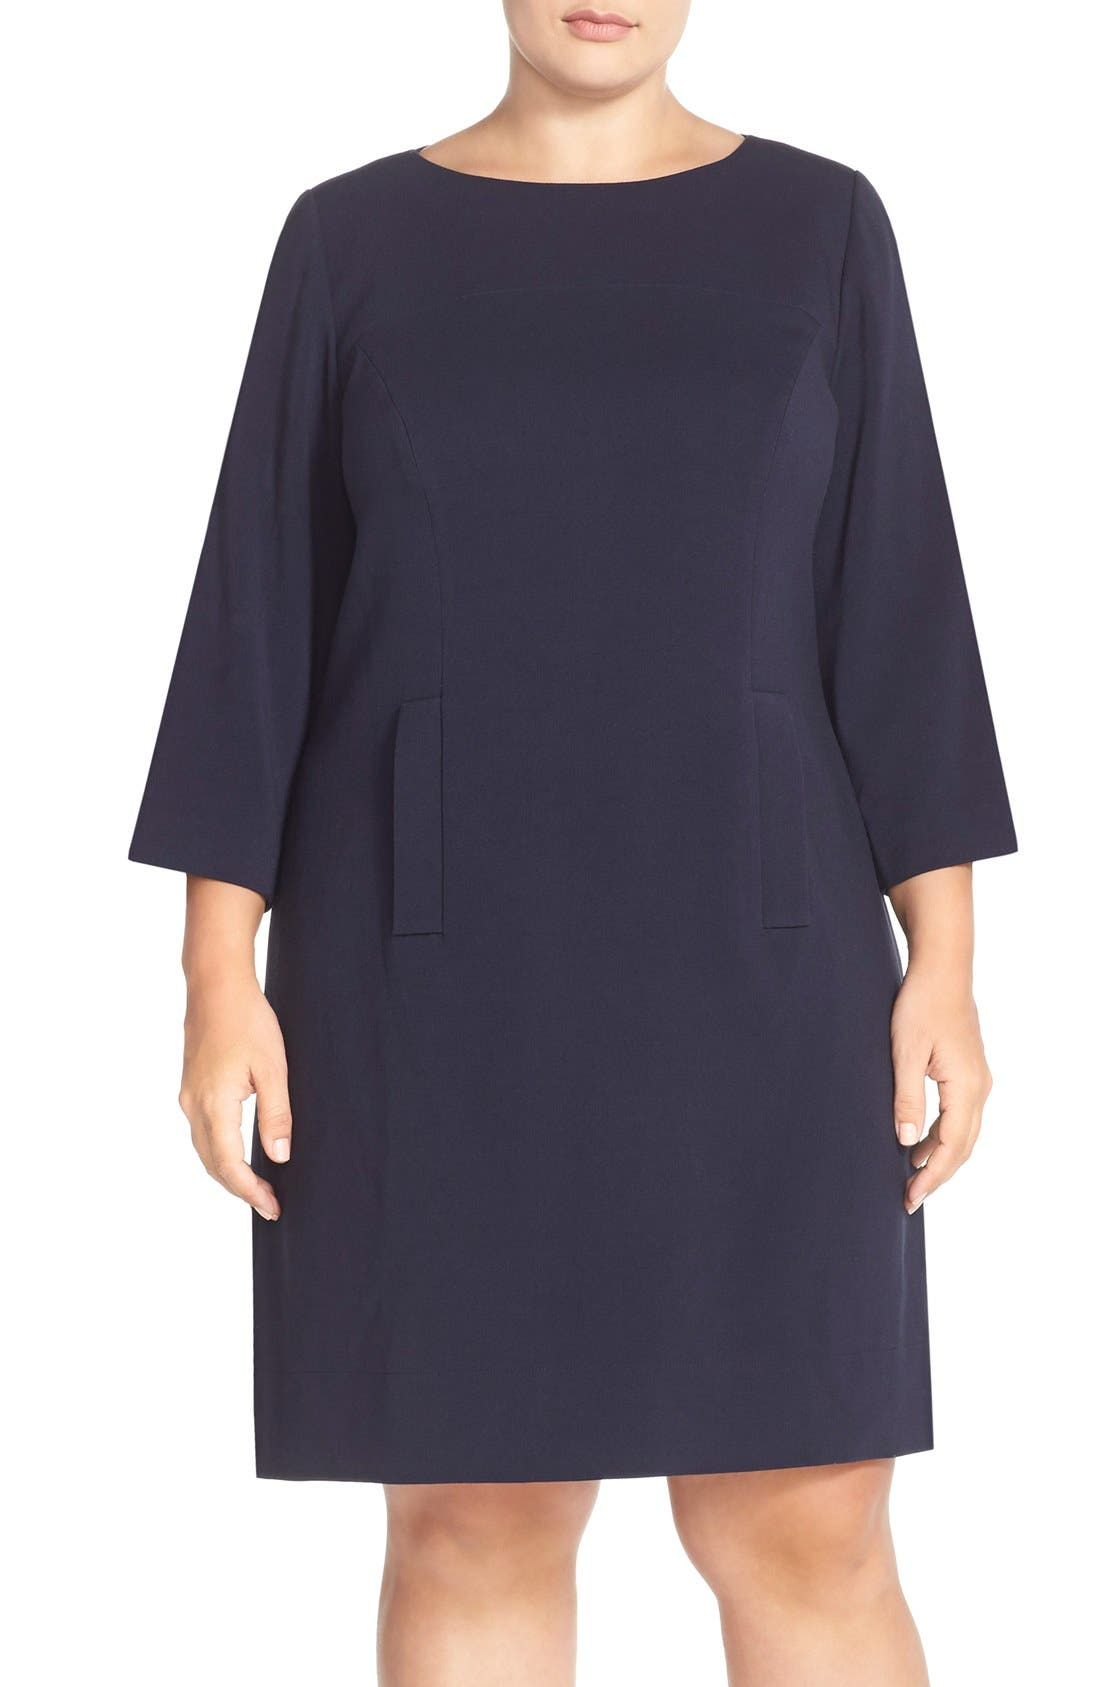 Alternate Image 1 Selected - Eliza J Pocket Detail Shift Dress (Plus Size)